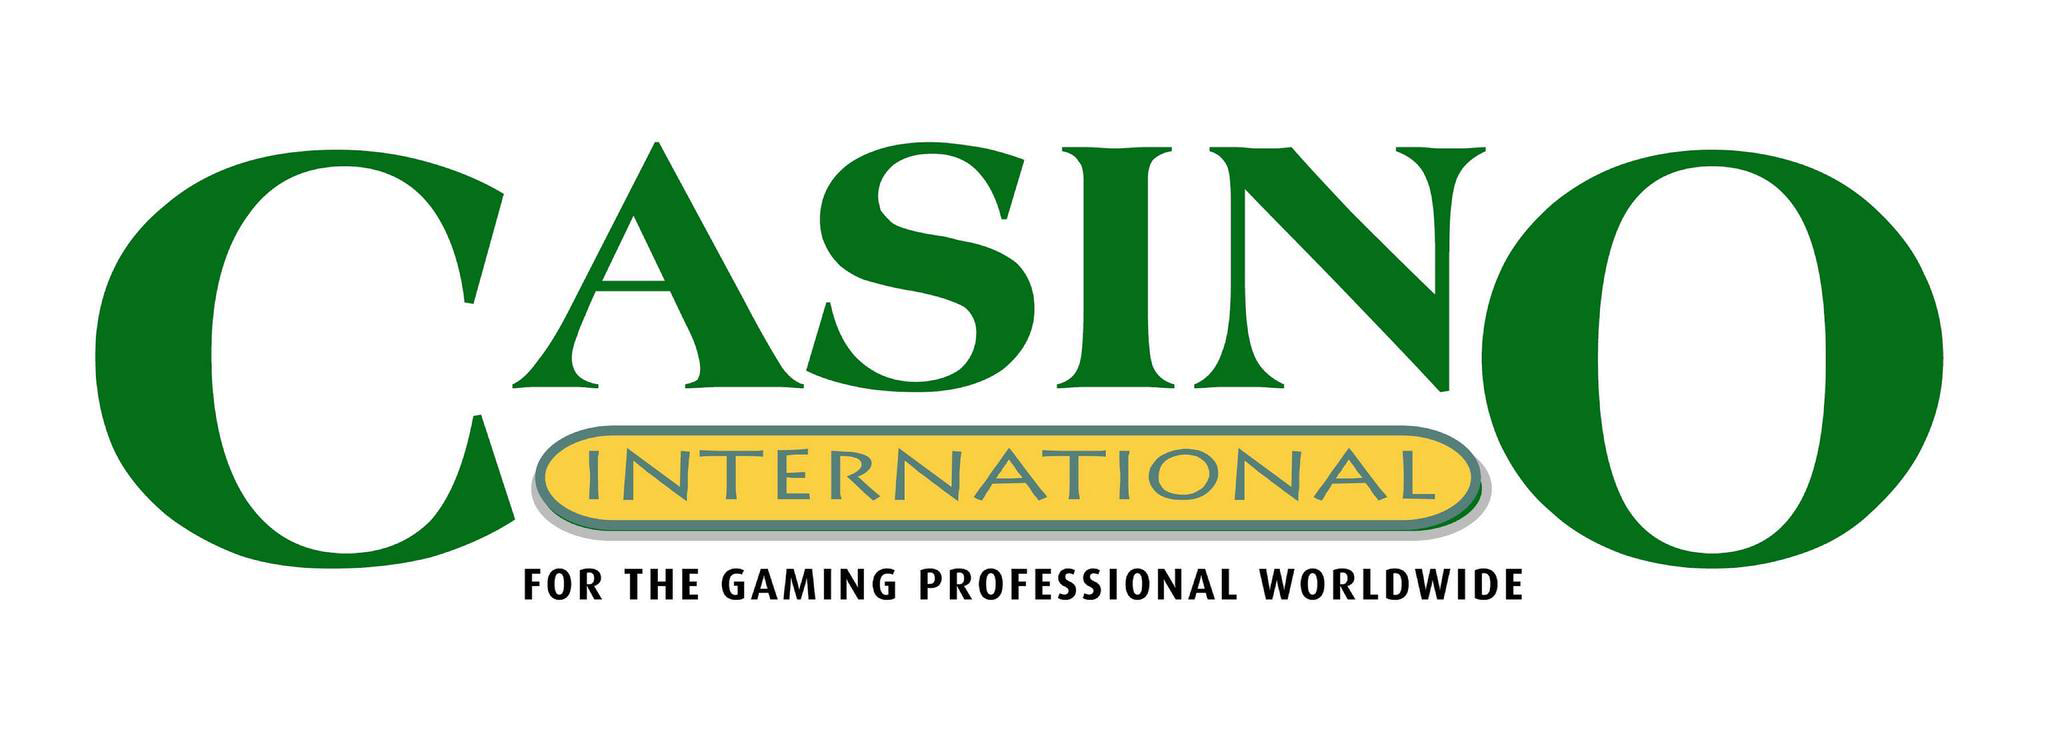 Casino_International_Logo.png